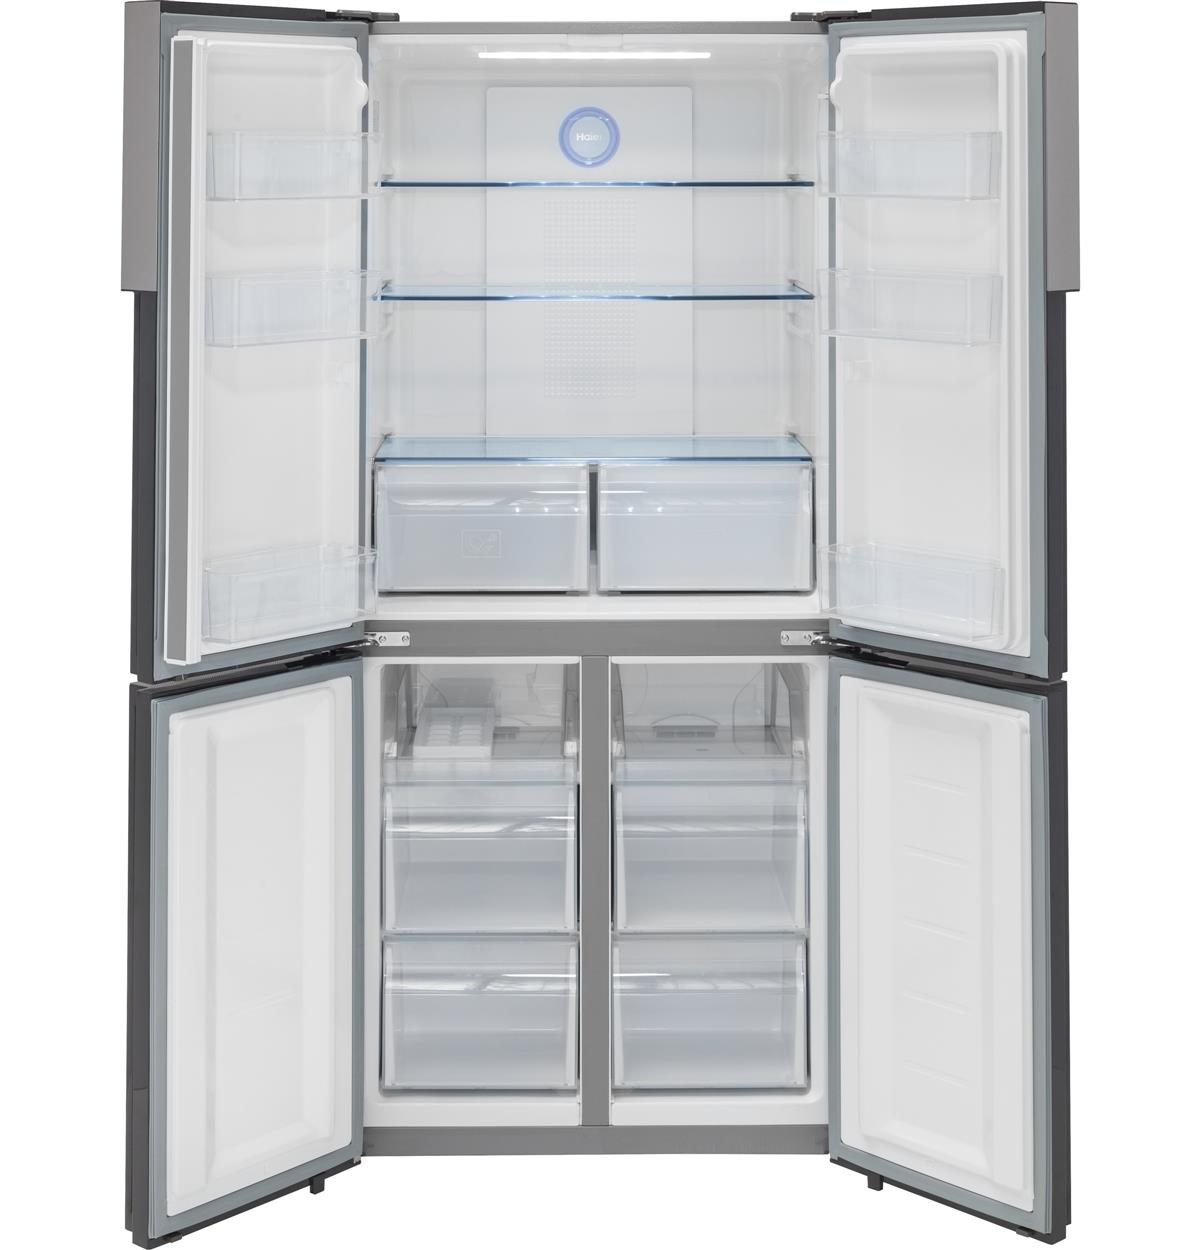 Stainless Bottom-Freezer HRQ16N3BGS Un-installed/free-standing